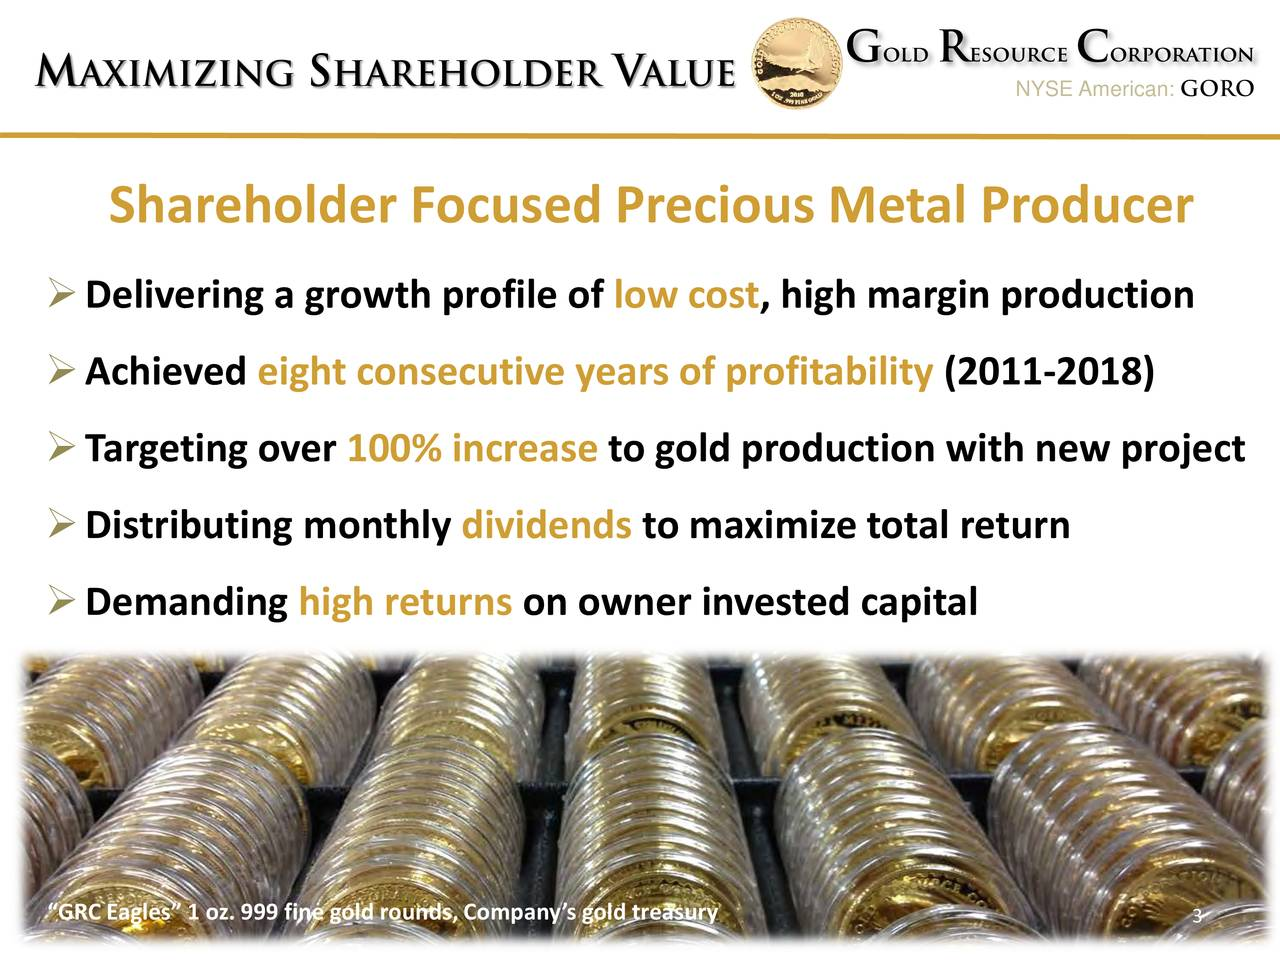 "NYSE American: GORO Shareholder Focused Precious Metal Producer Delivering a growth profile oflow cost, high margin production Achieved eight consecutive years of profitability(2011-2018) Targeting over100% increase to gold production with new project Distributing monthly dividends to maximize total return Demanding high returns on owner invested capital ""GRC Eagles"" 1 oz. 999 fine gold rounds, Company's g3ld treasury"